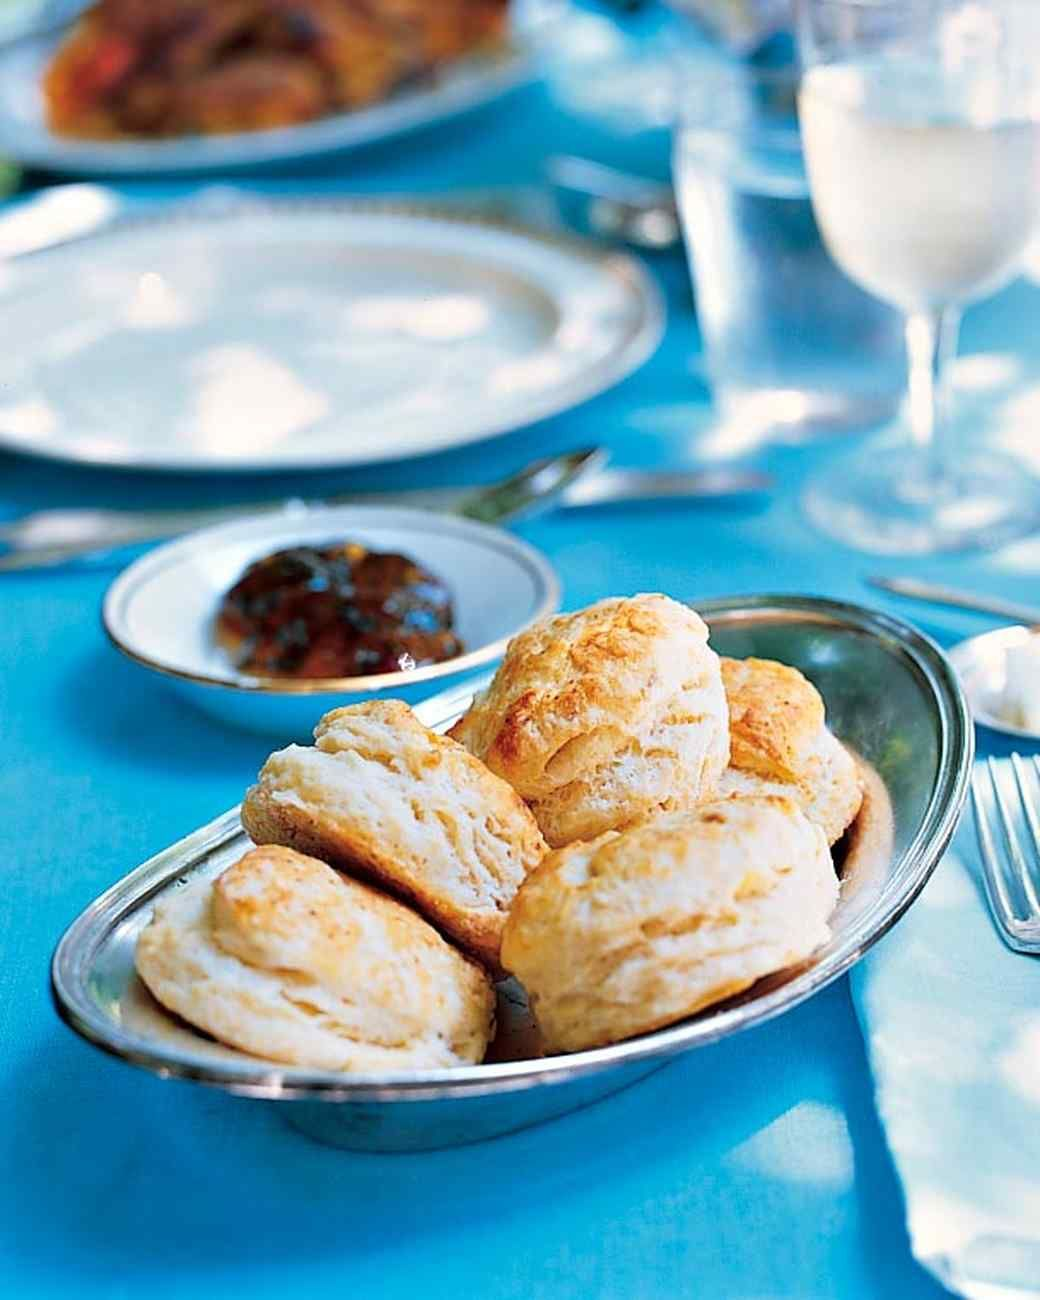 These flaky biscuits benefit from, but do not require, butter and spicy-sweet pepper jelly.